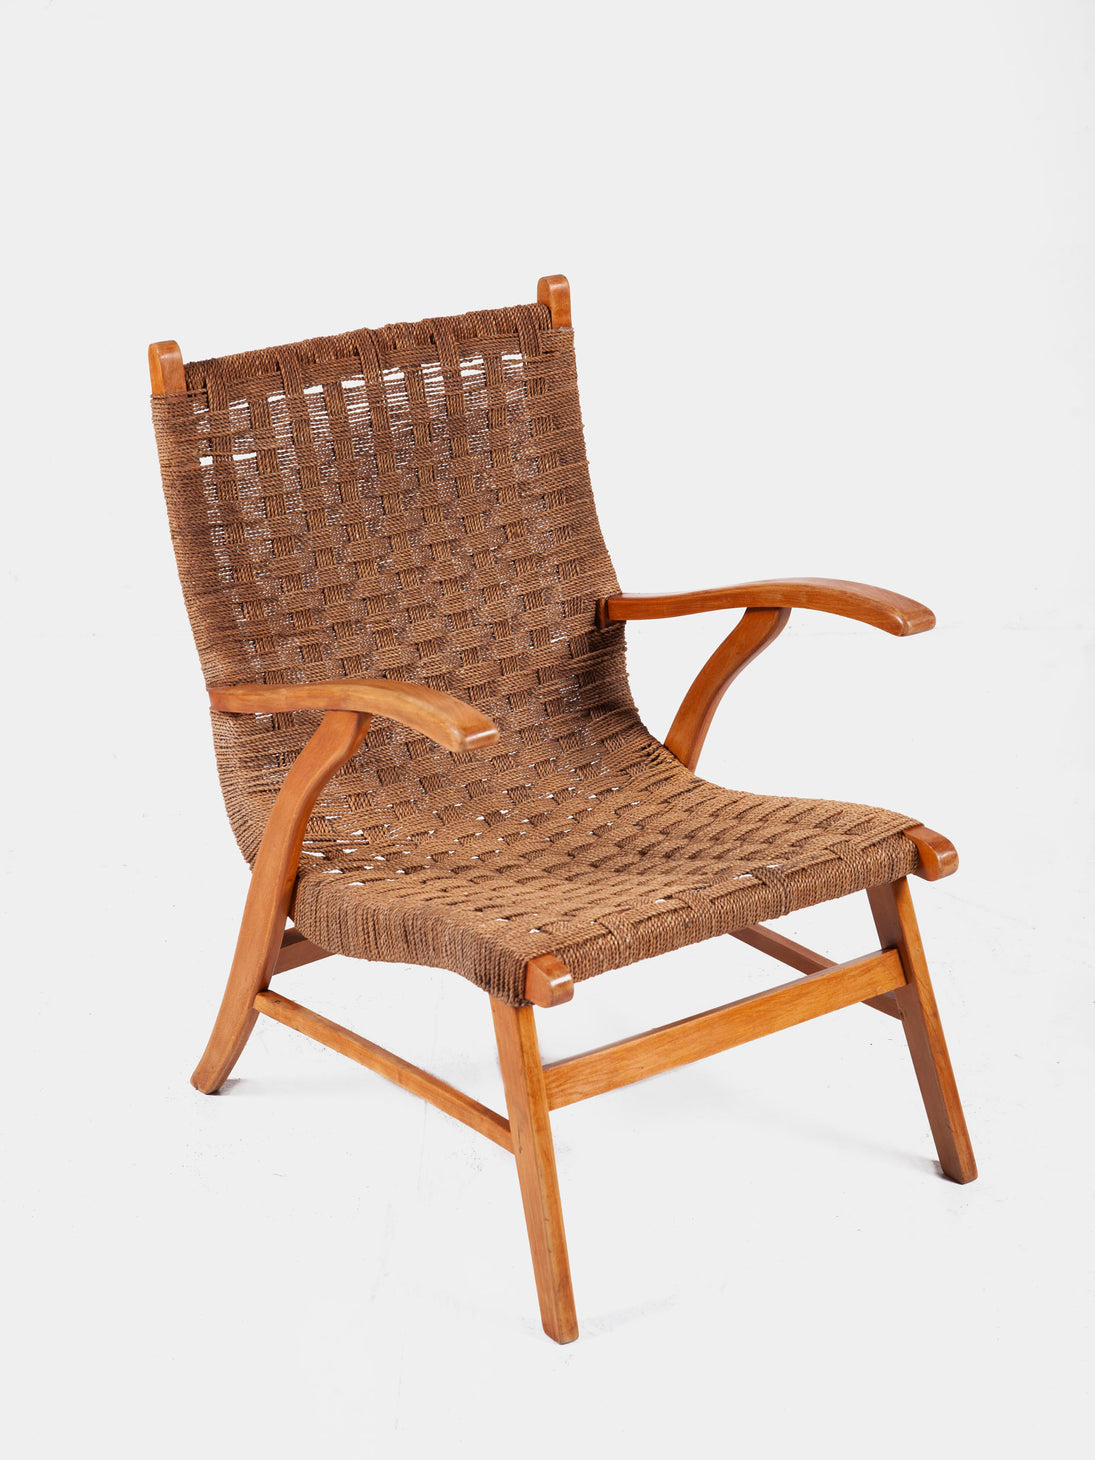 Armchair by Bas Van Pelt in Wood and Rope